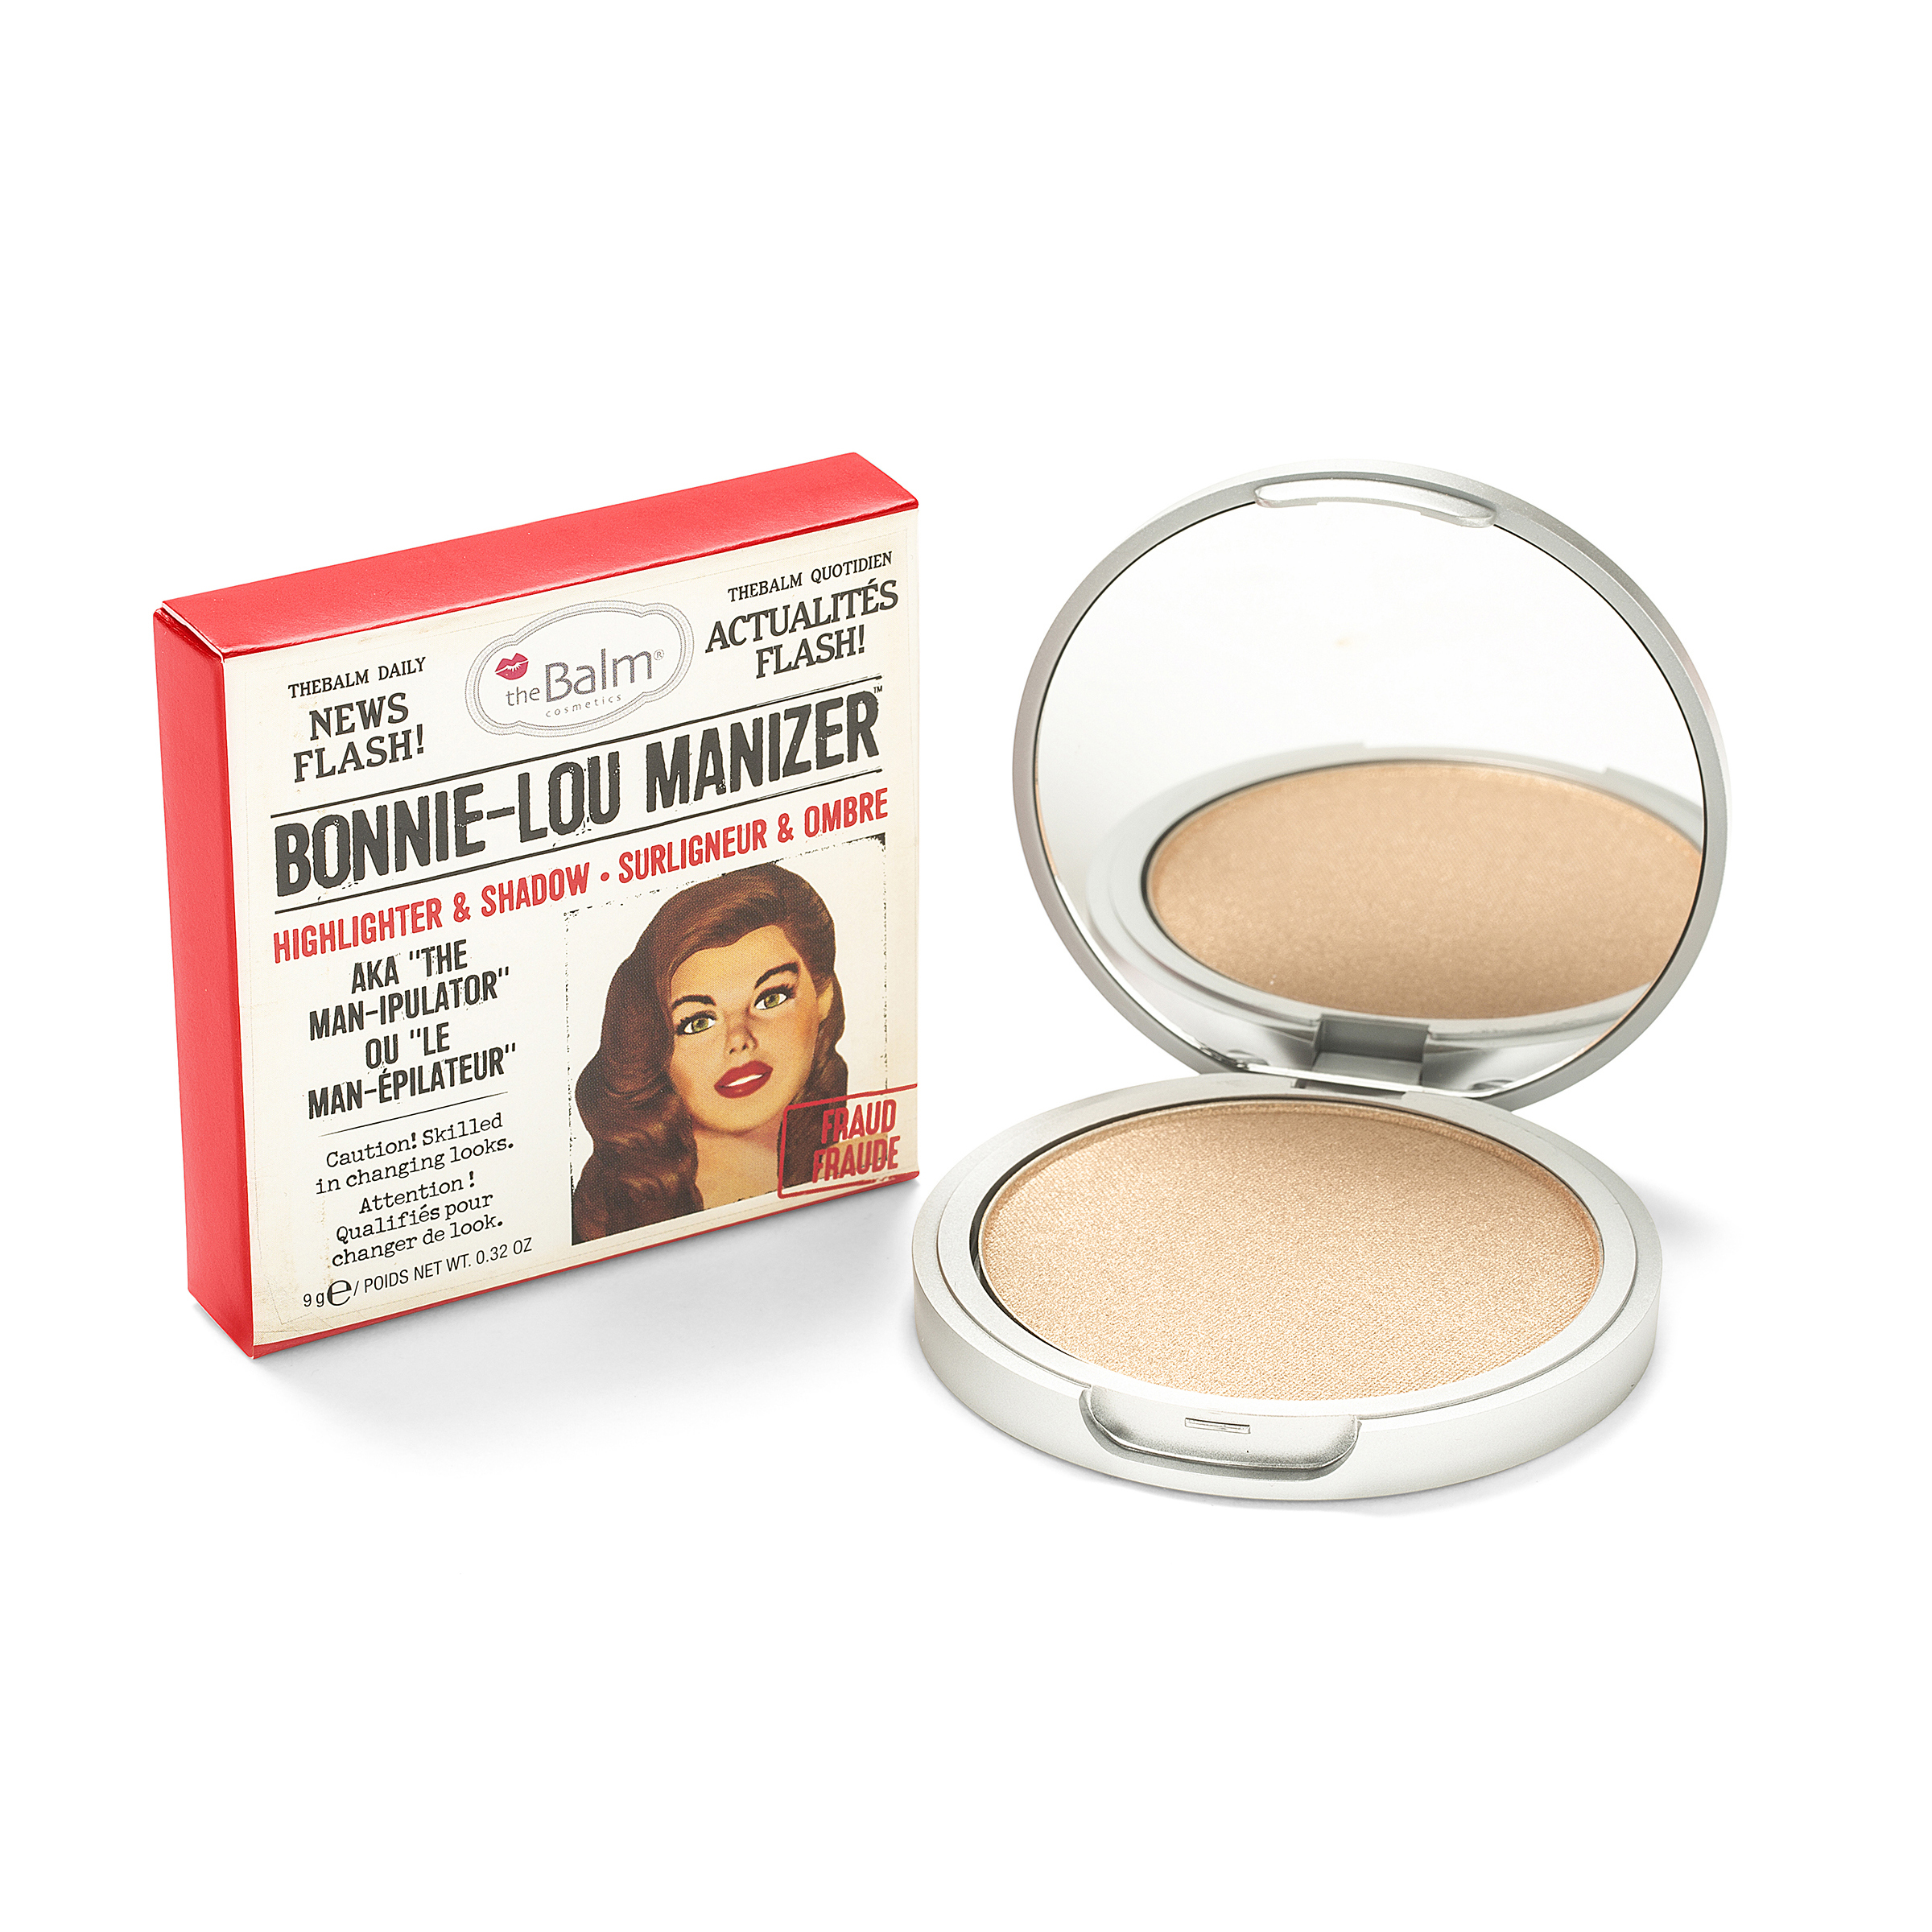 Bonnie Lou Manizer Eyes Bonnie-Lou Manizer Highlighter & Shadow